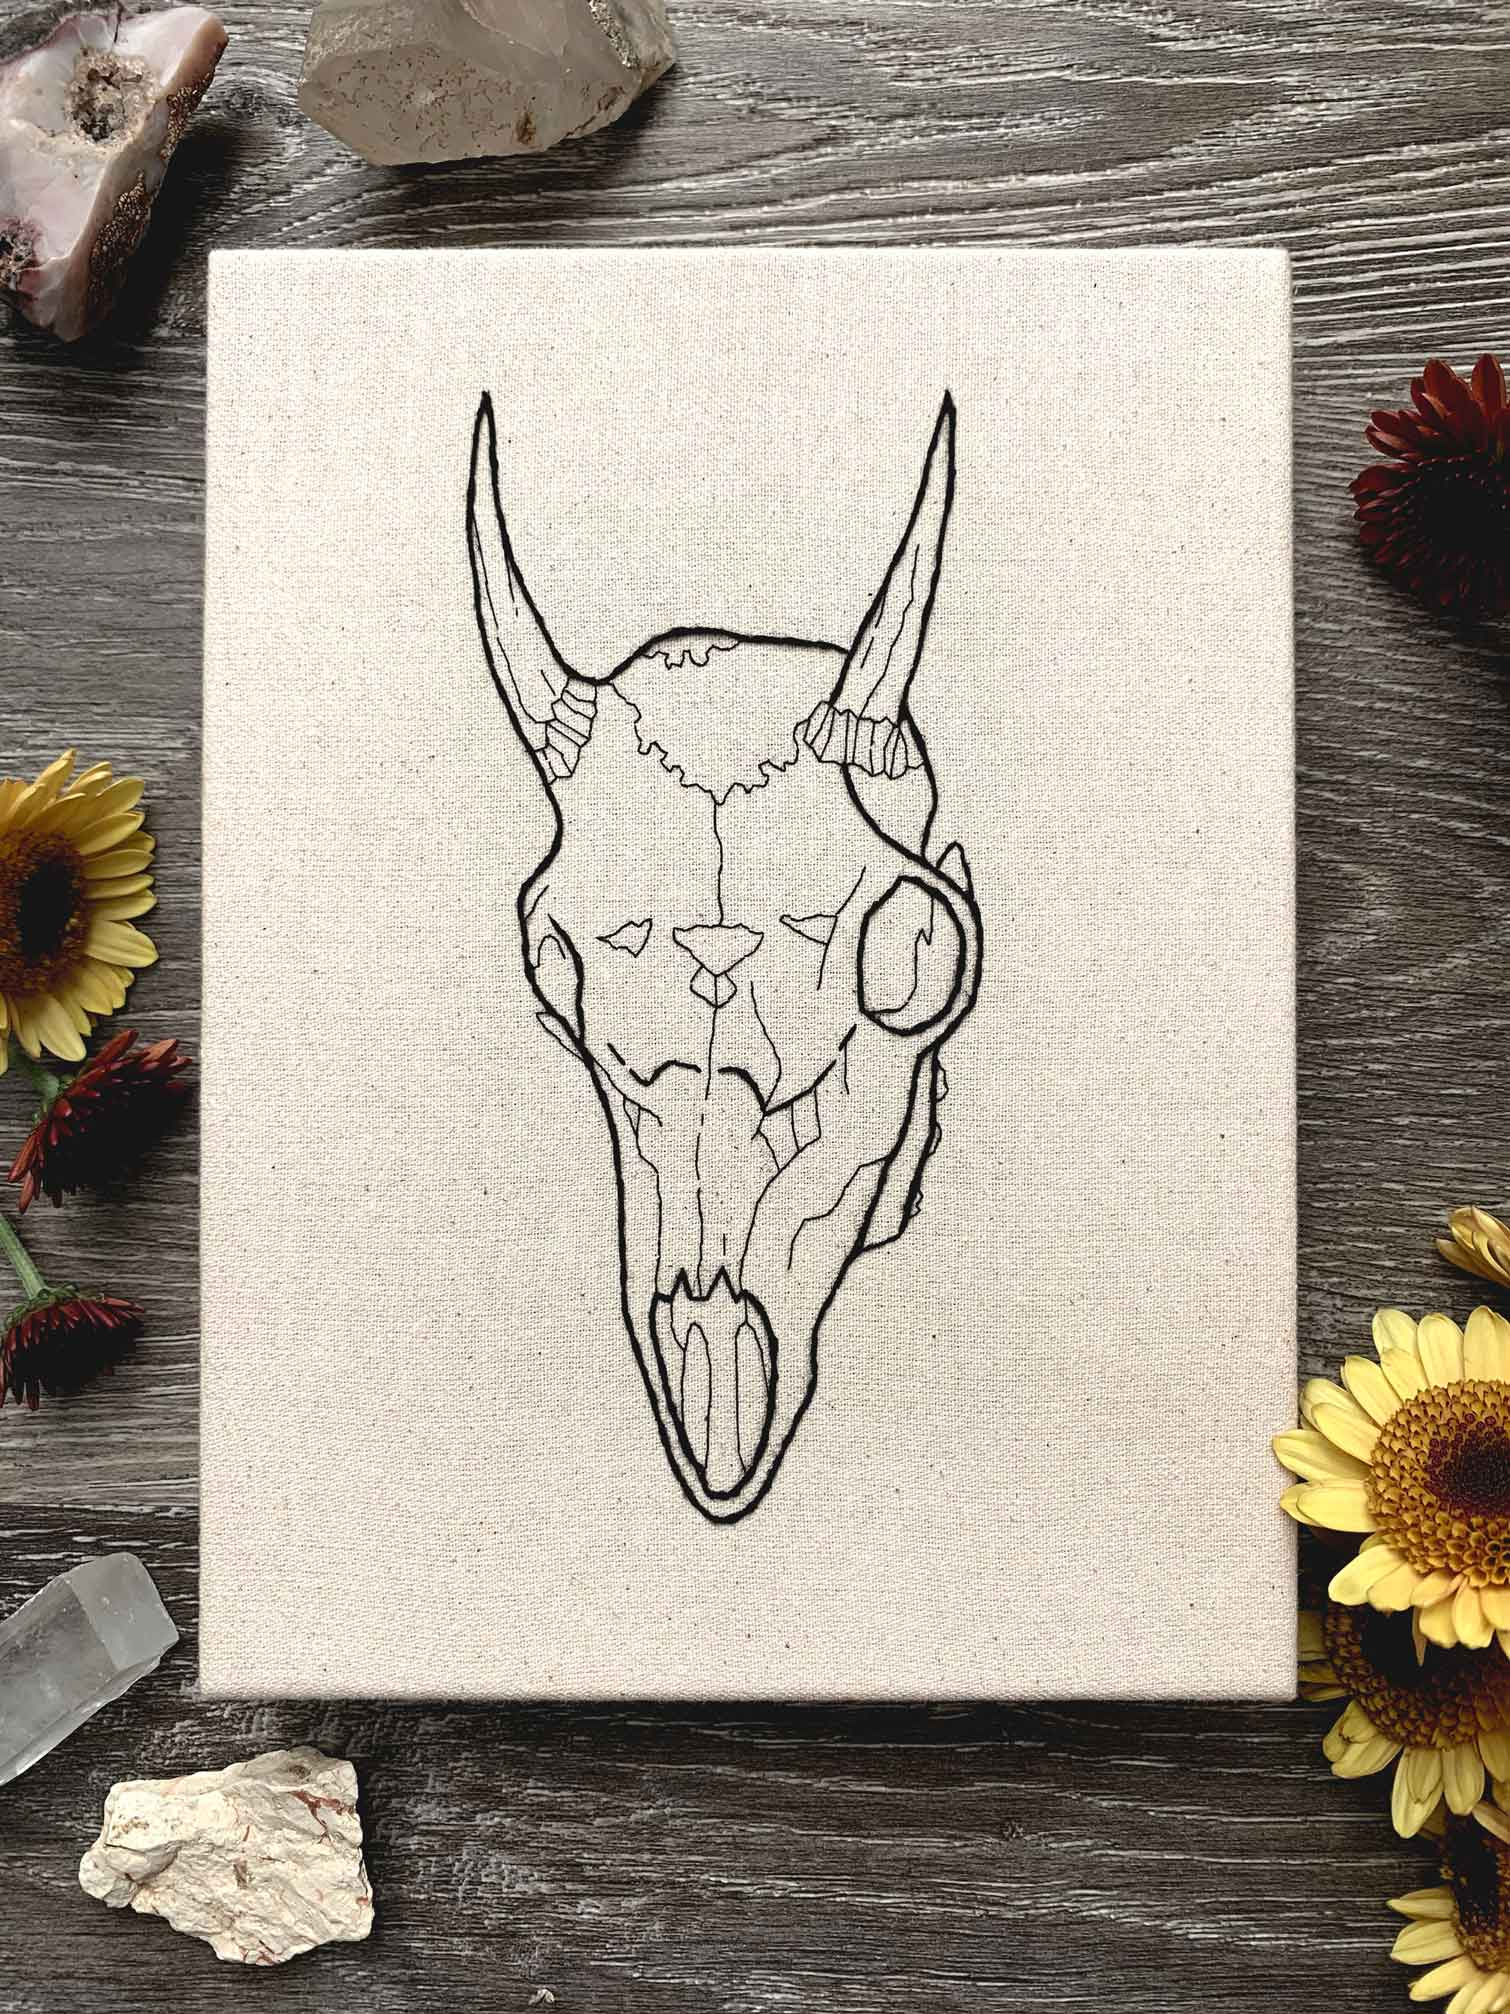 sewn embroidery of an animal goat skull